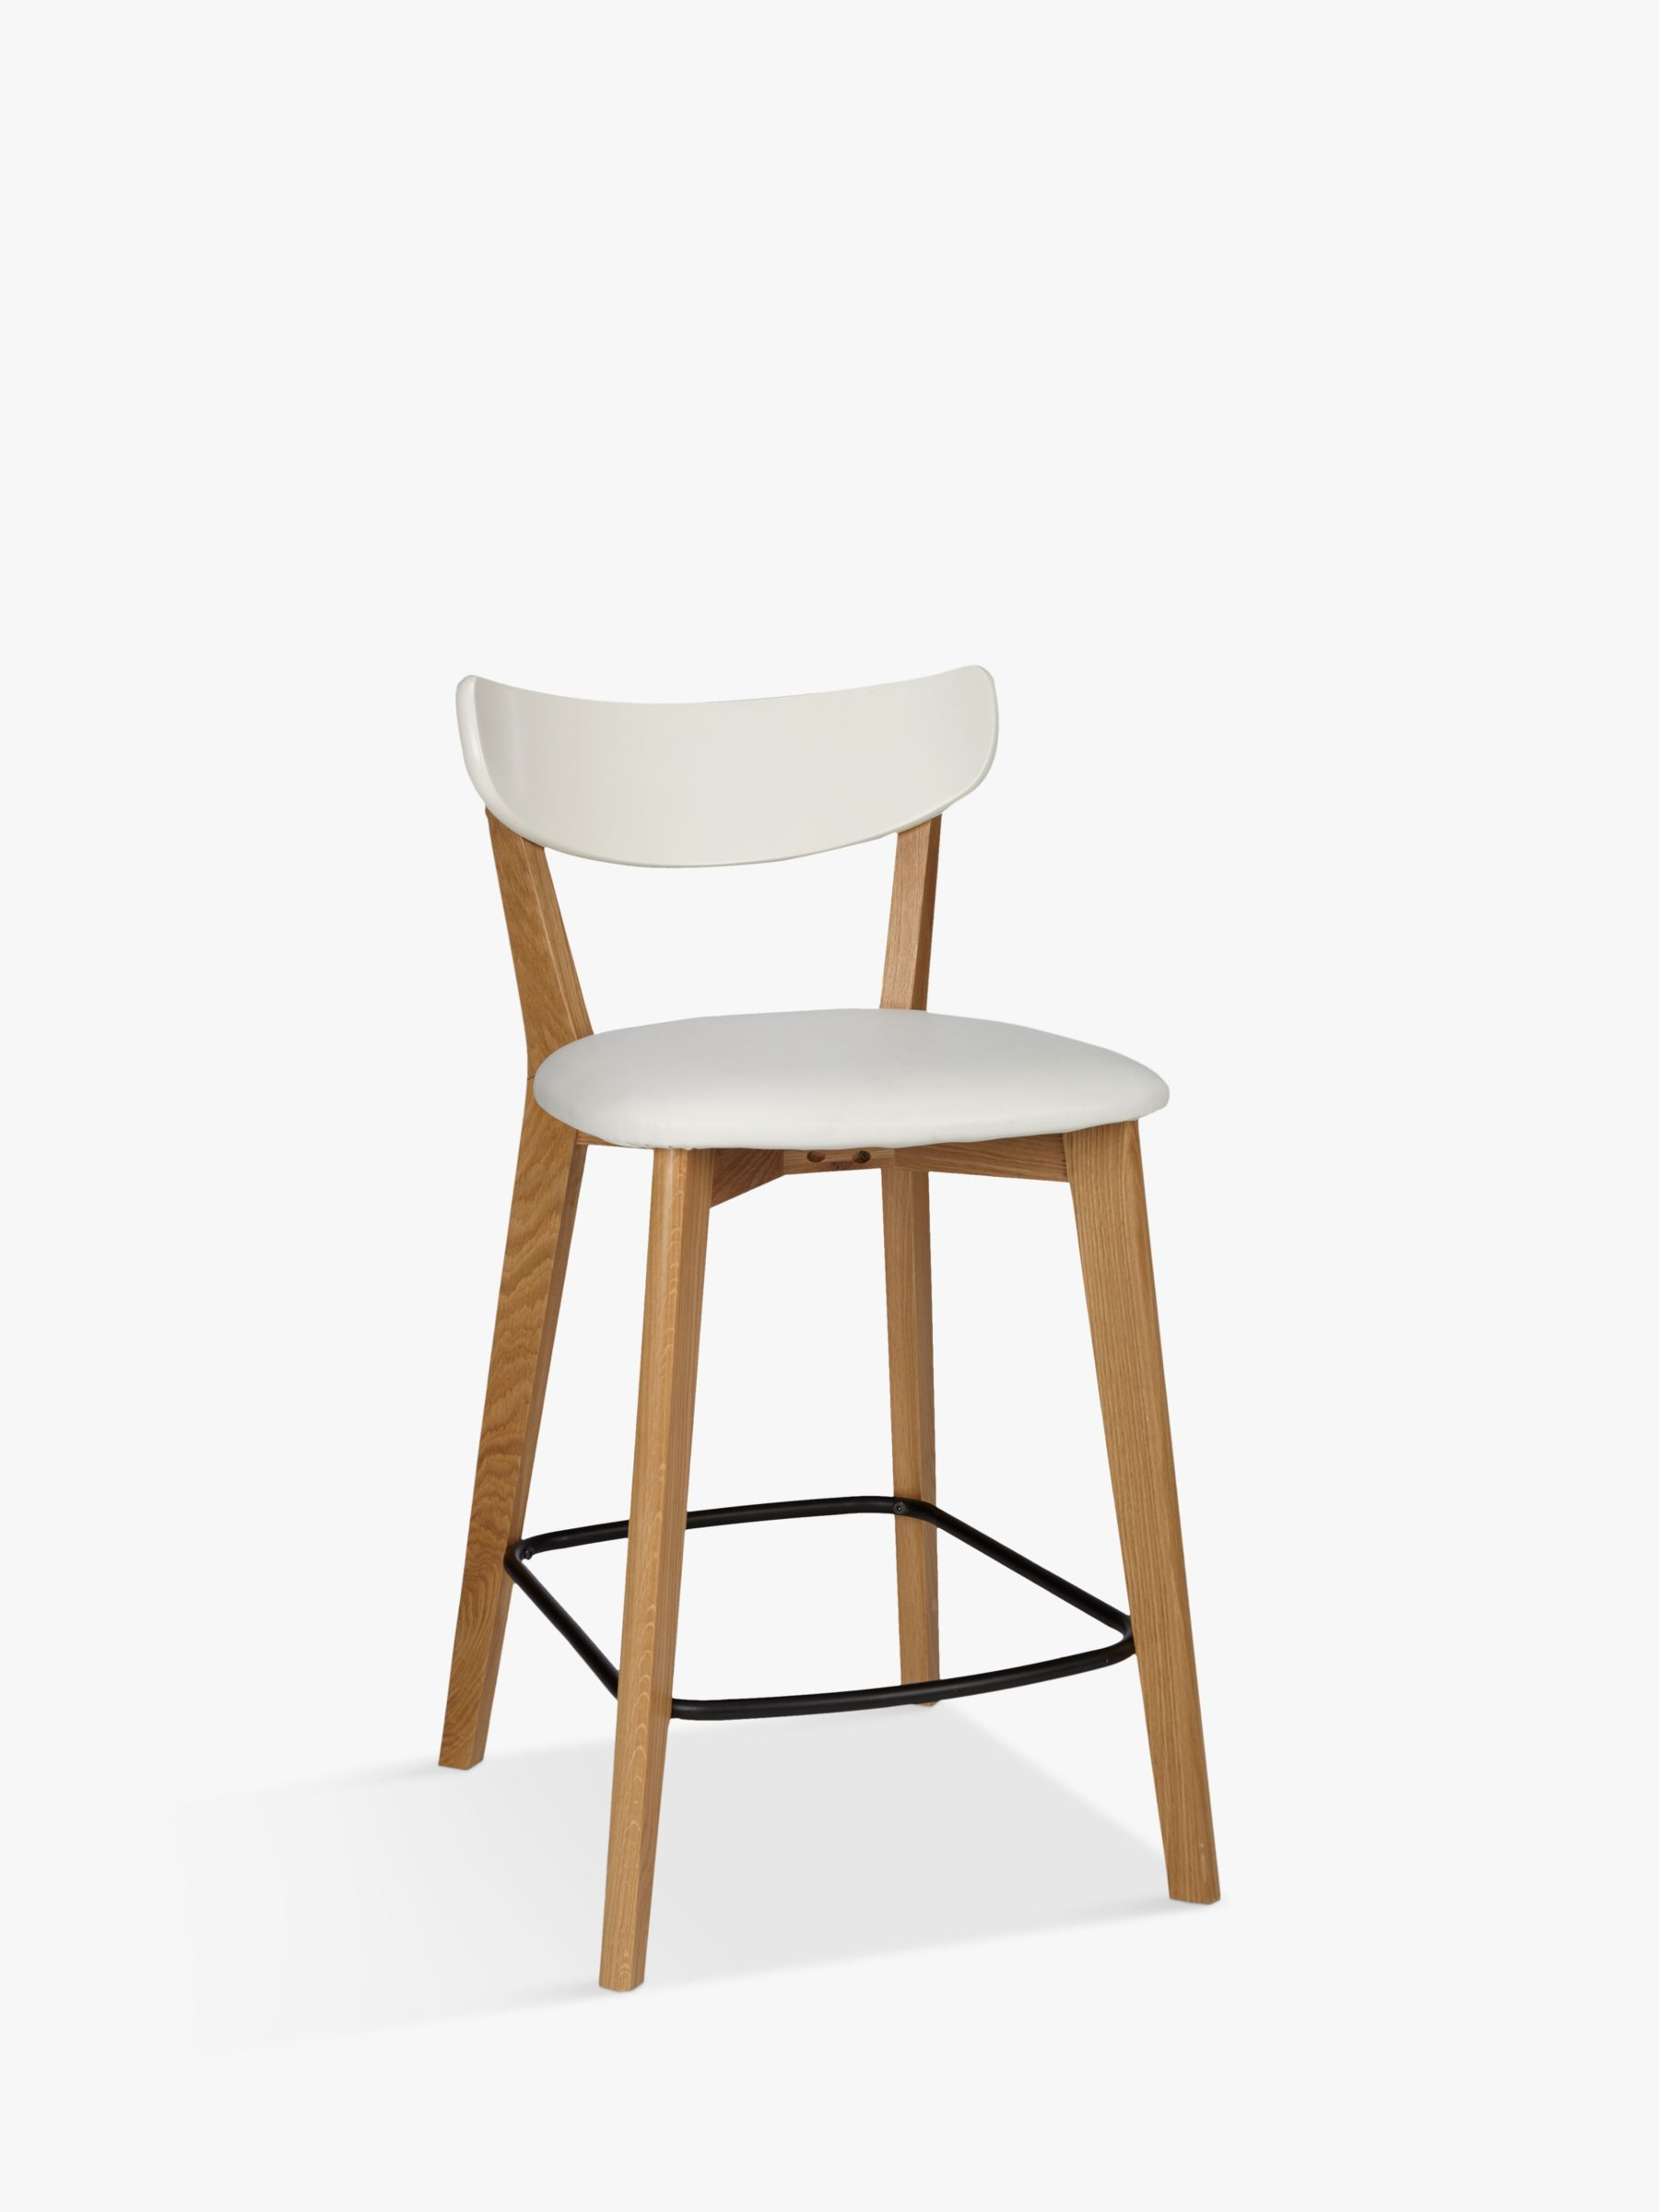 kitchen stools with backs moen faucets repair bar chairs breakfast john lewis partners house by clio chair oak white